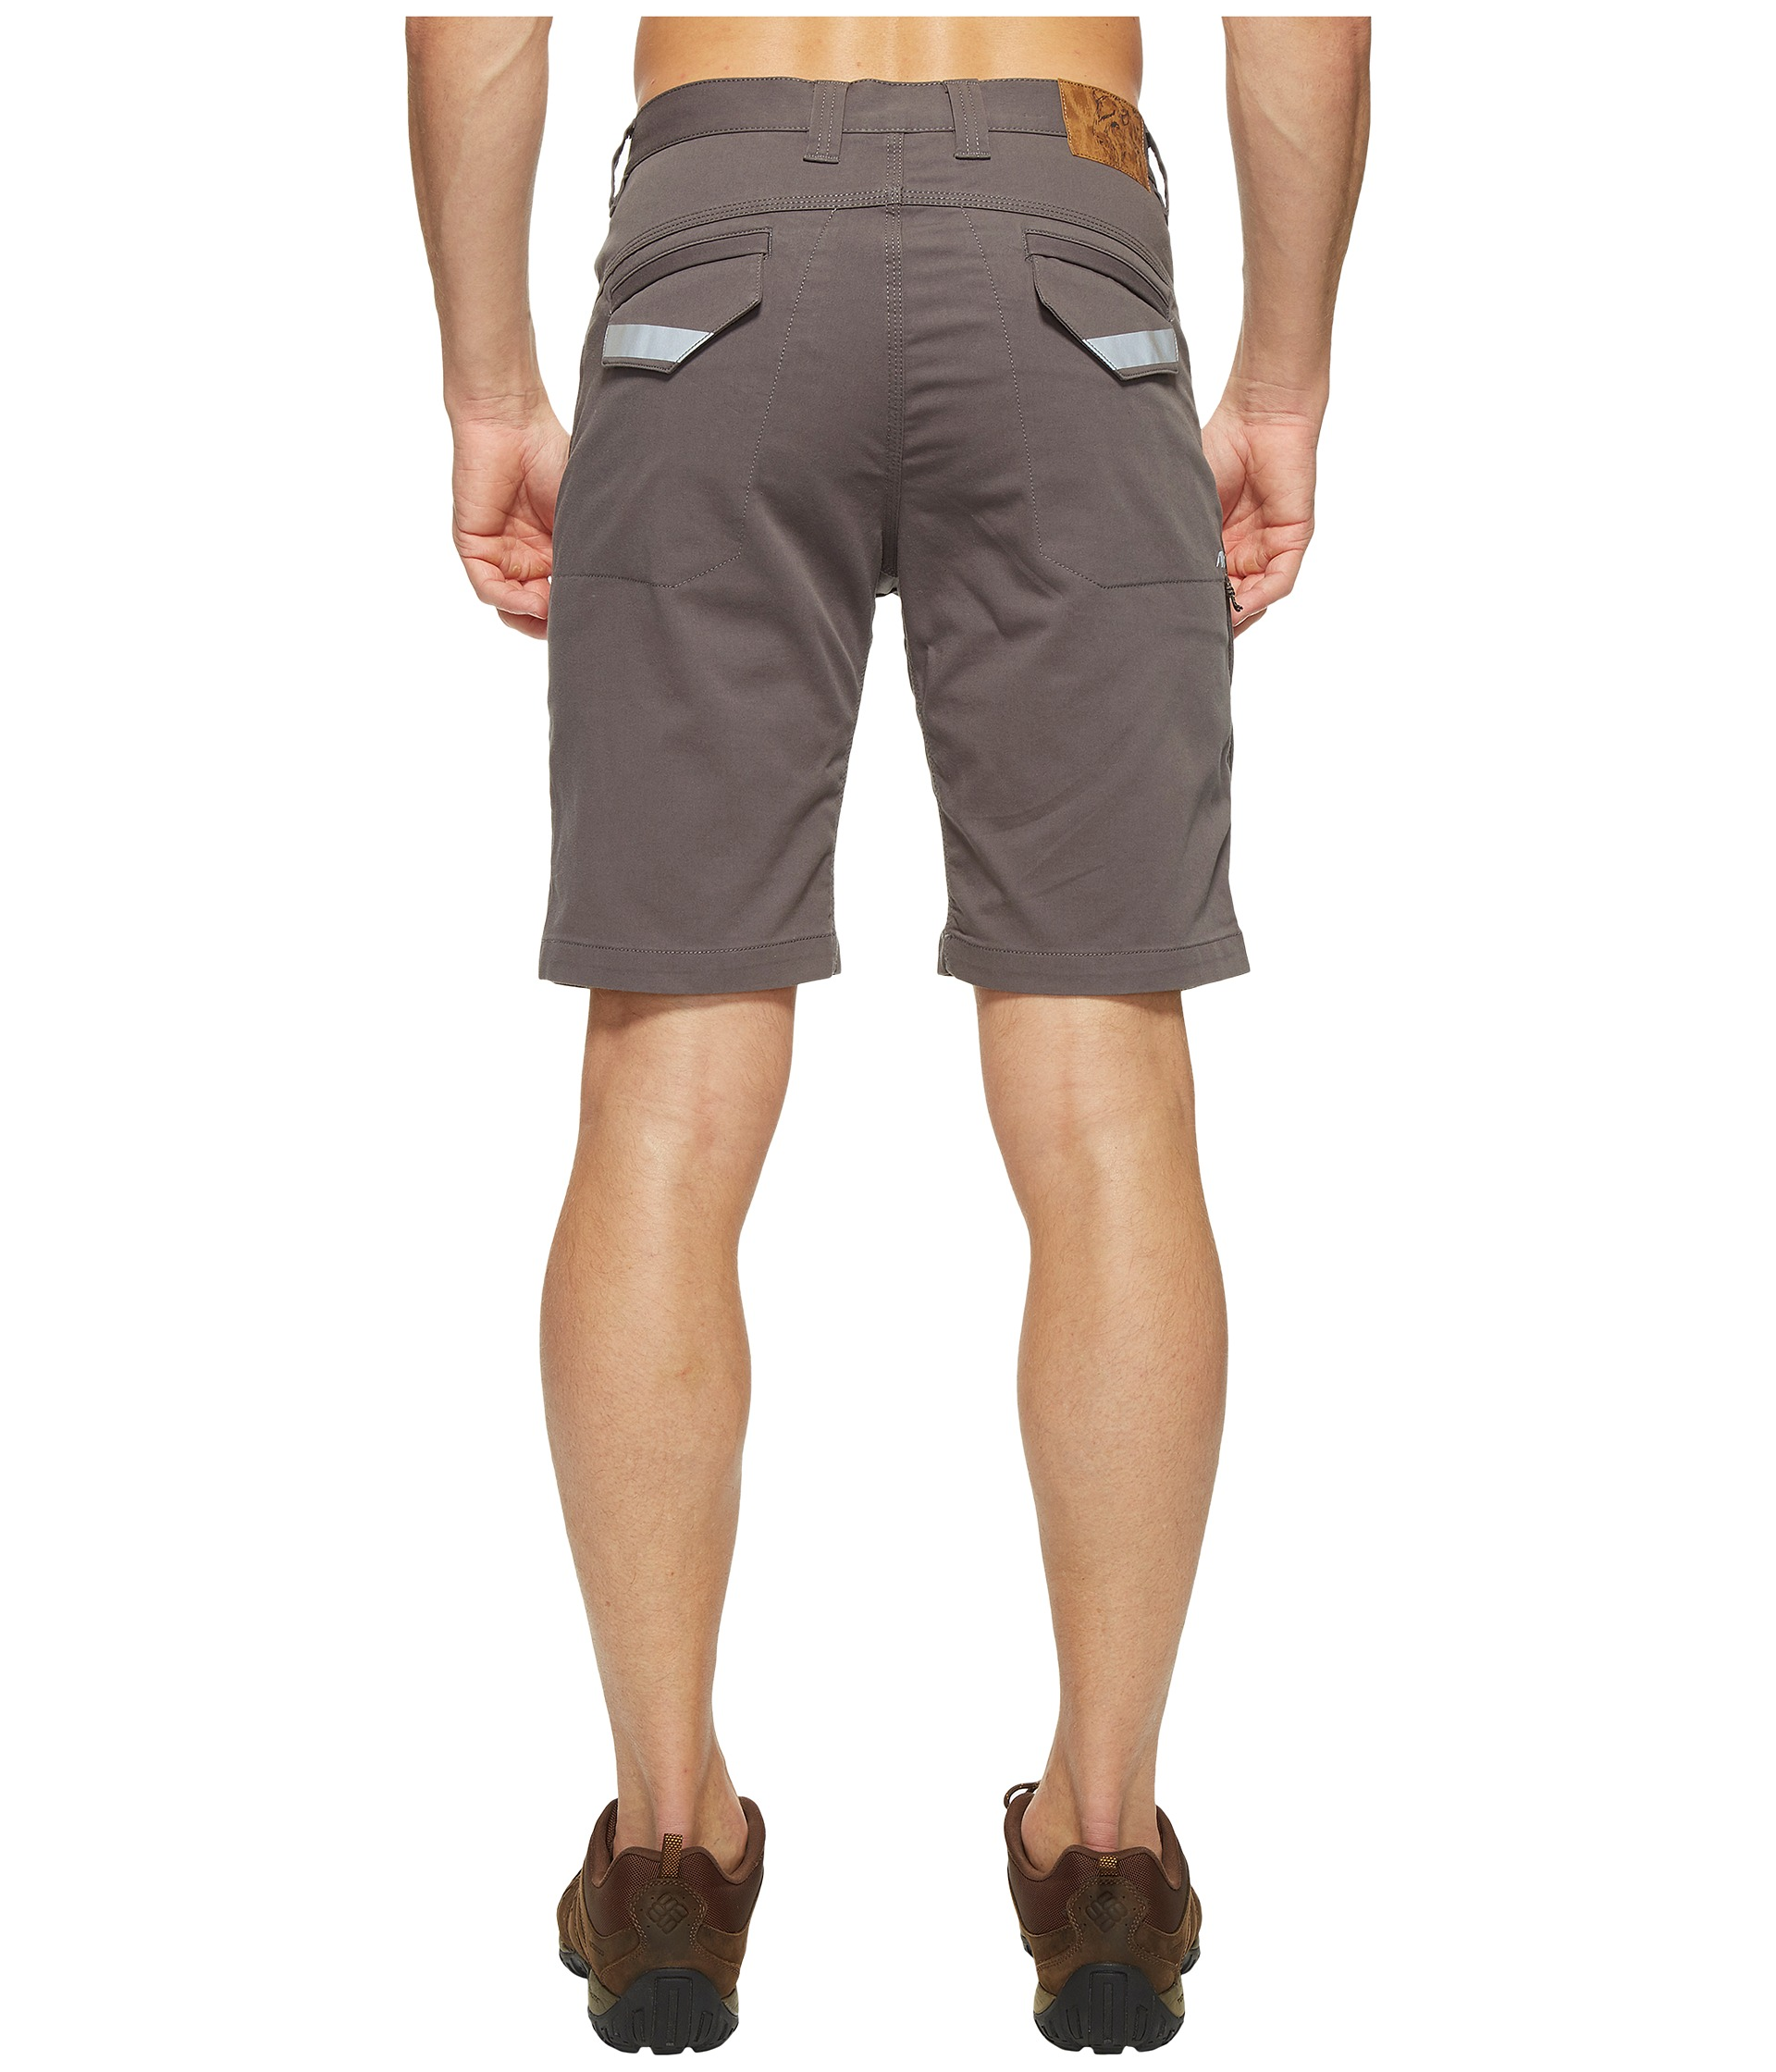 Mountain Khakis Commuter Shorts Slim Fit at Zappos.com